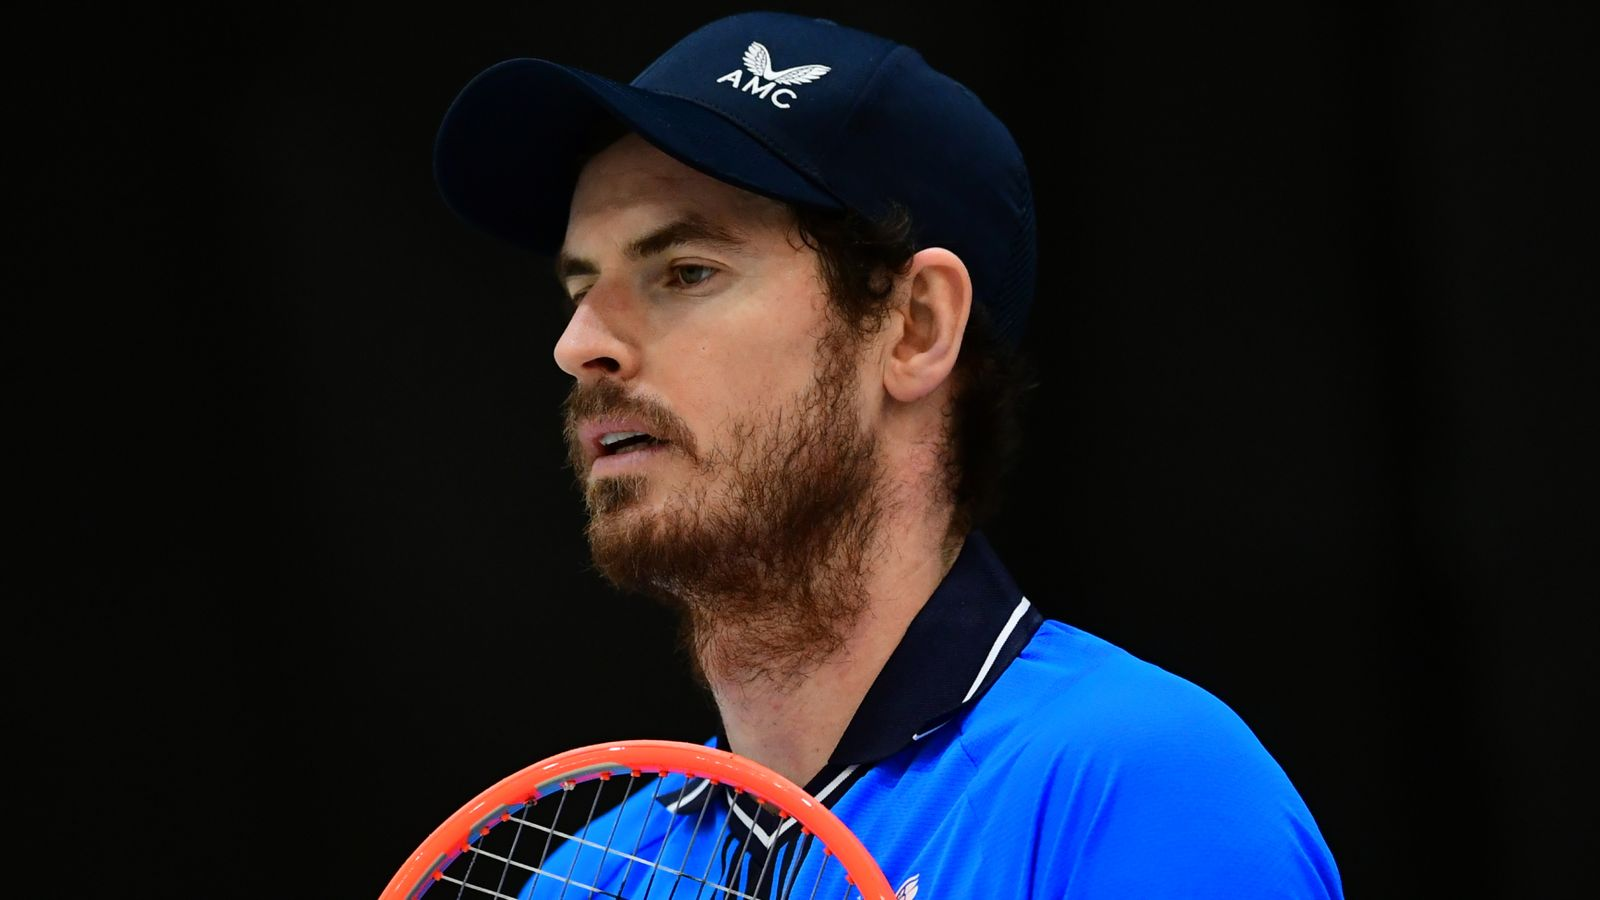 Andy Murray is heading in the right direction, believes four-time Wimbledon semi-finalist Tim Henman